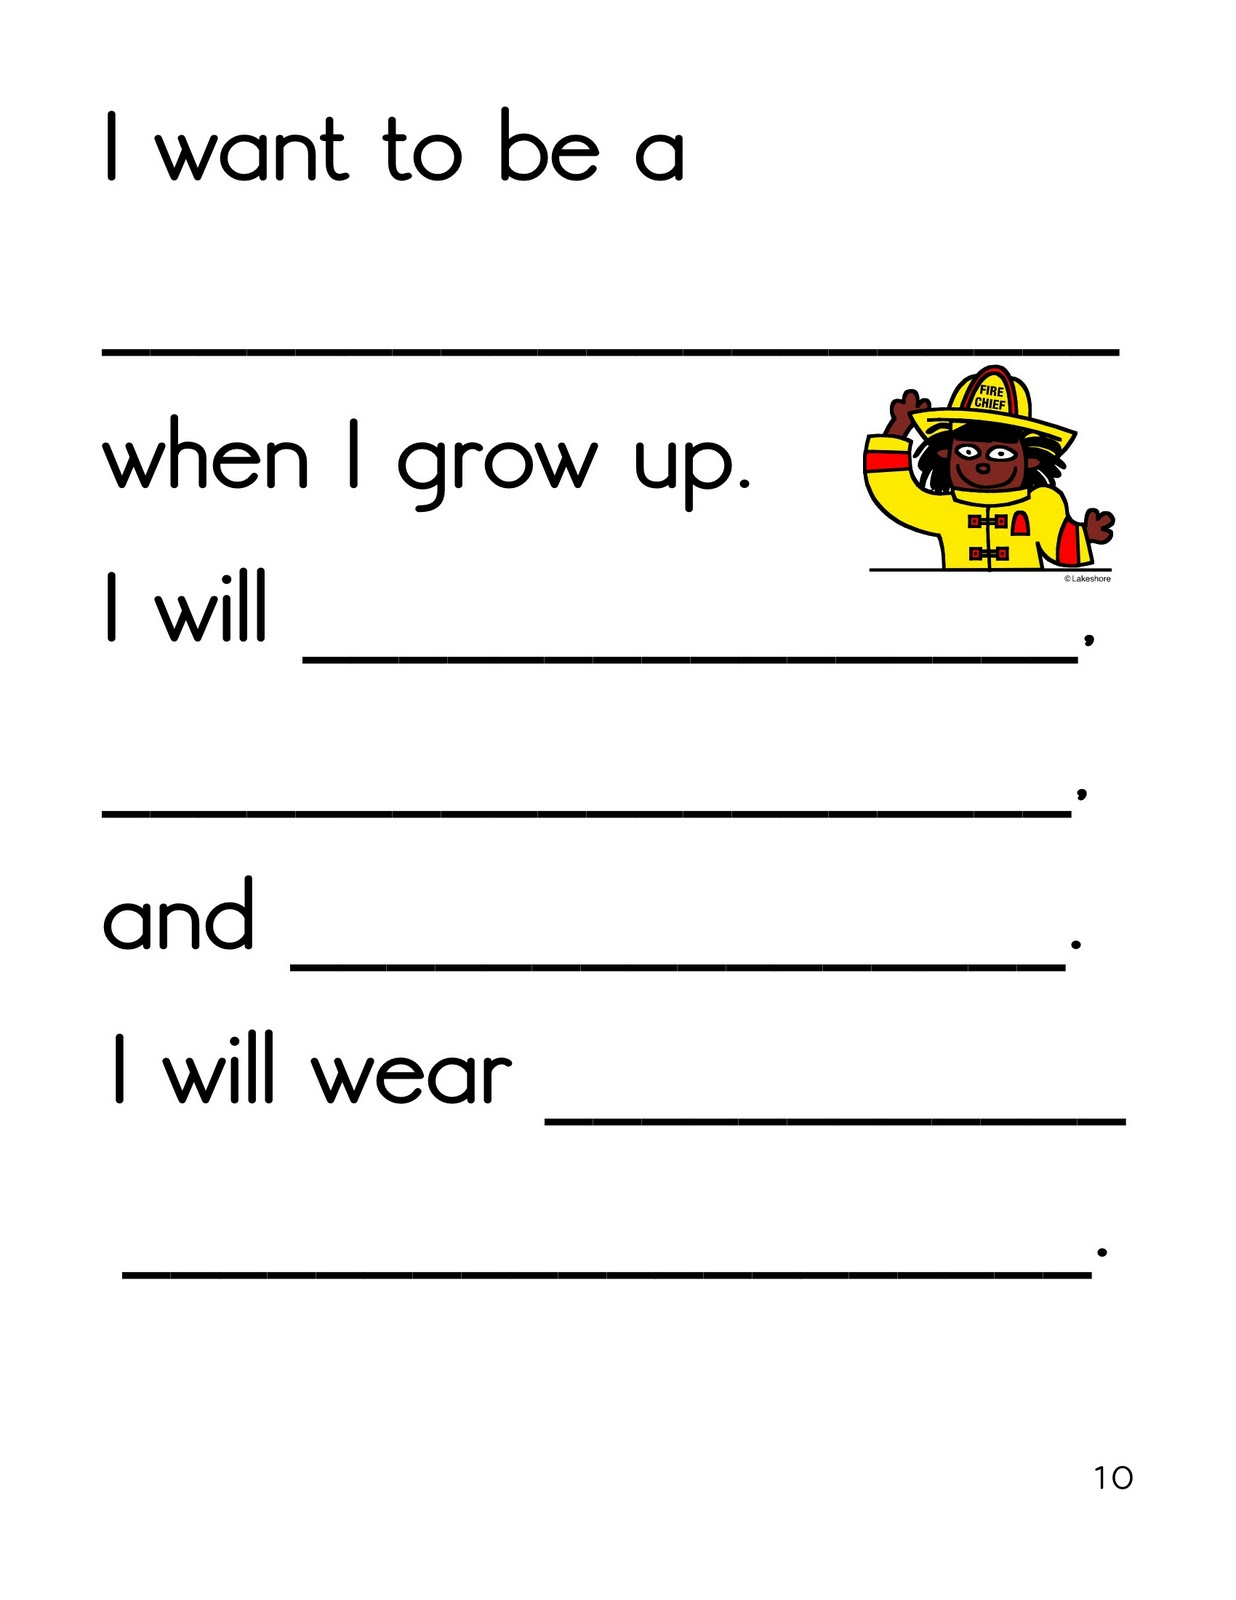 When I Grow Up Preschool Worksheet Free What I Want To Be